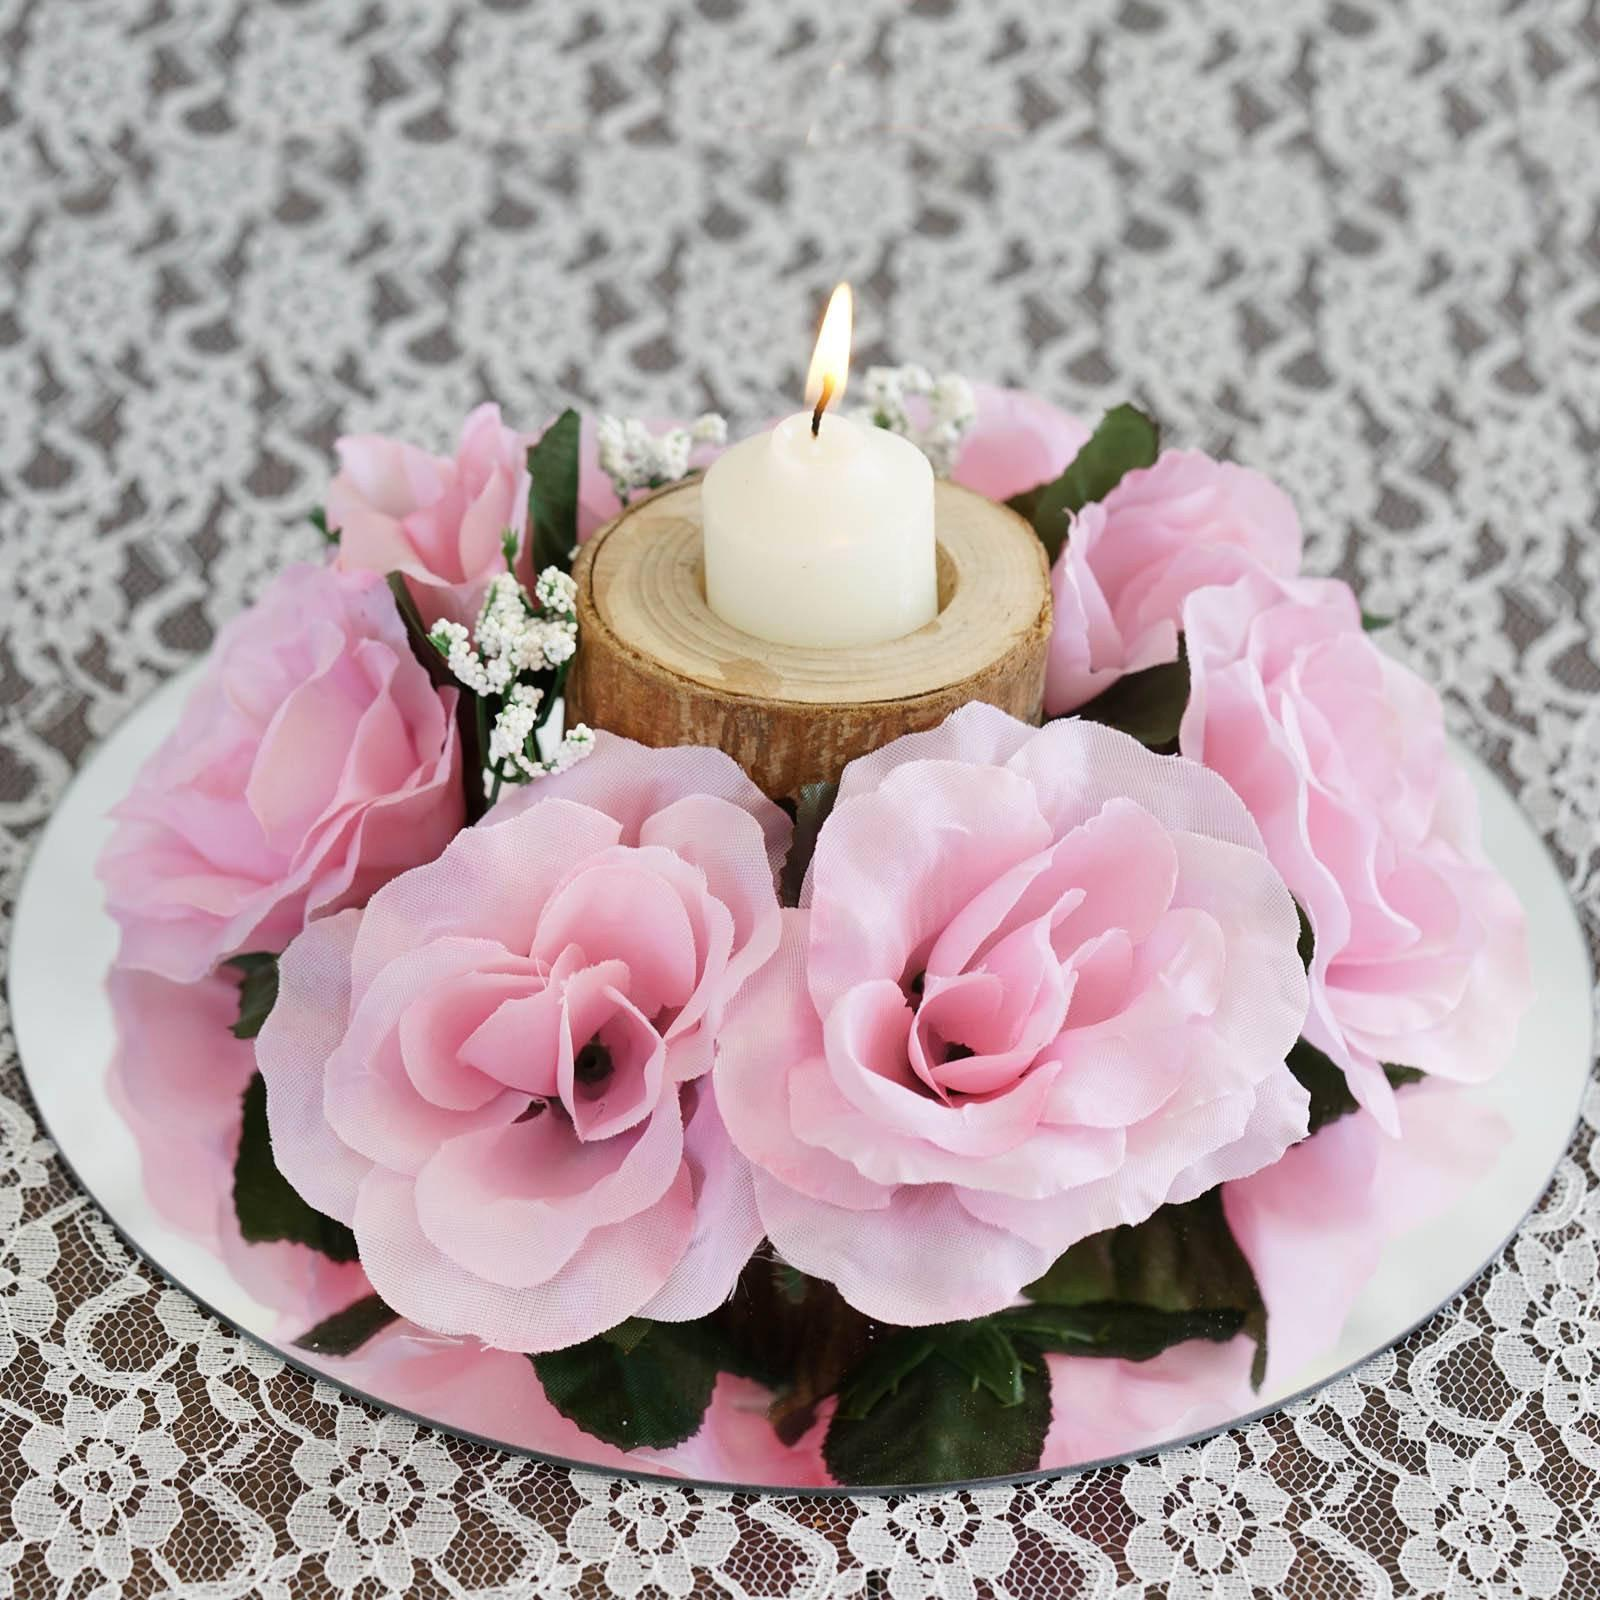 8 PCS Wholesale Candle Rings Wedding Flower Rose Tabletop ...